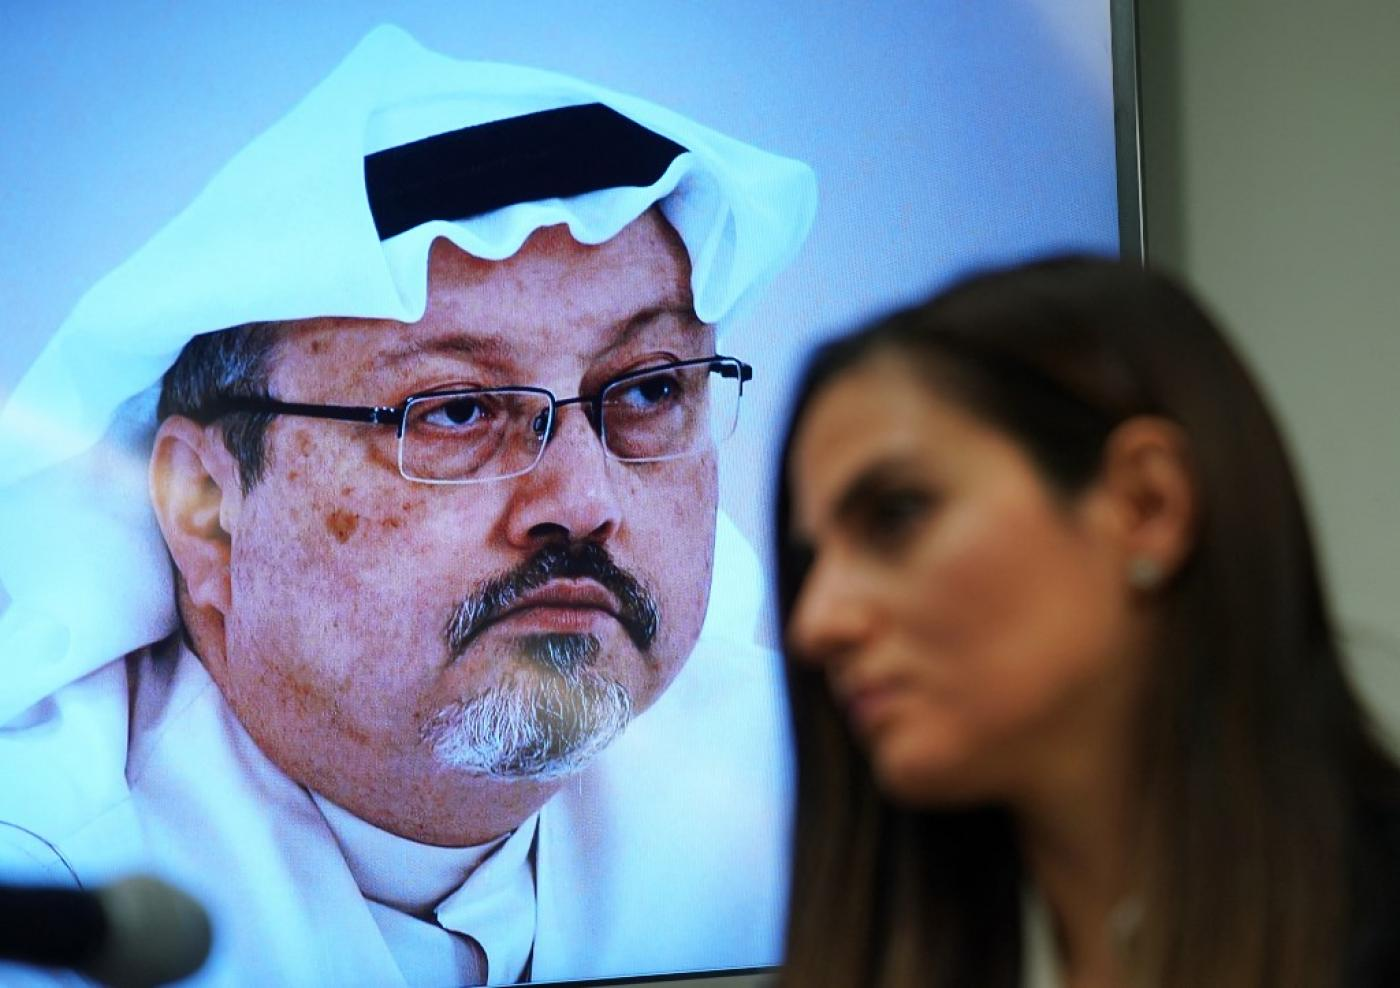 Khashoggi was killed inside the Saudi consulate in Istanbul on 2 October 2018.